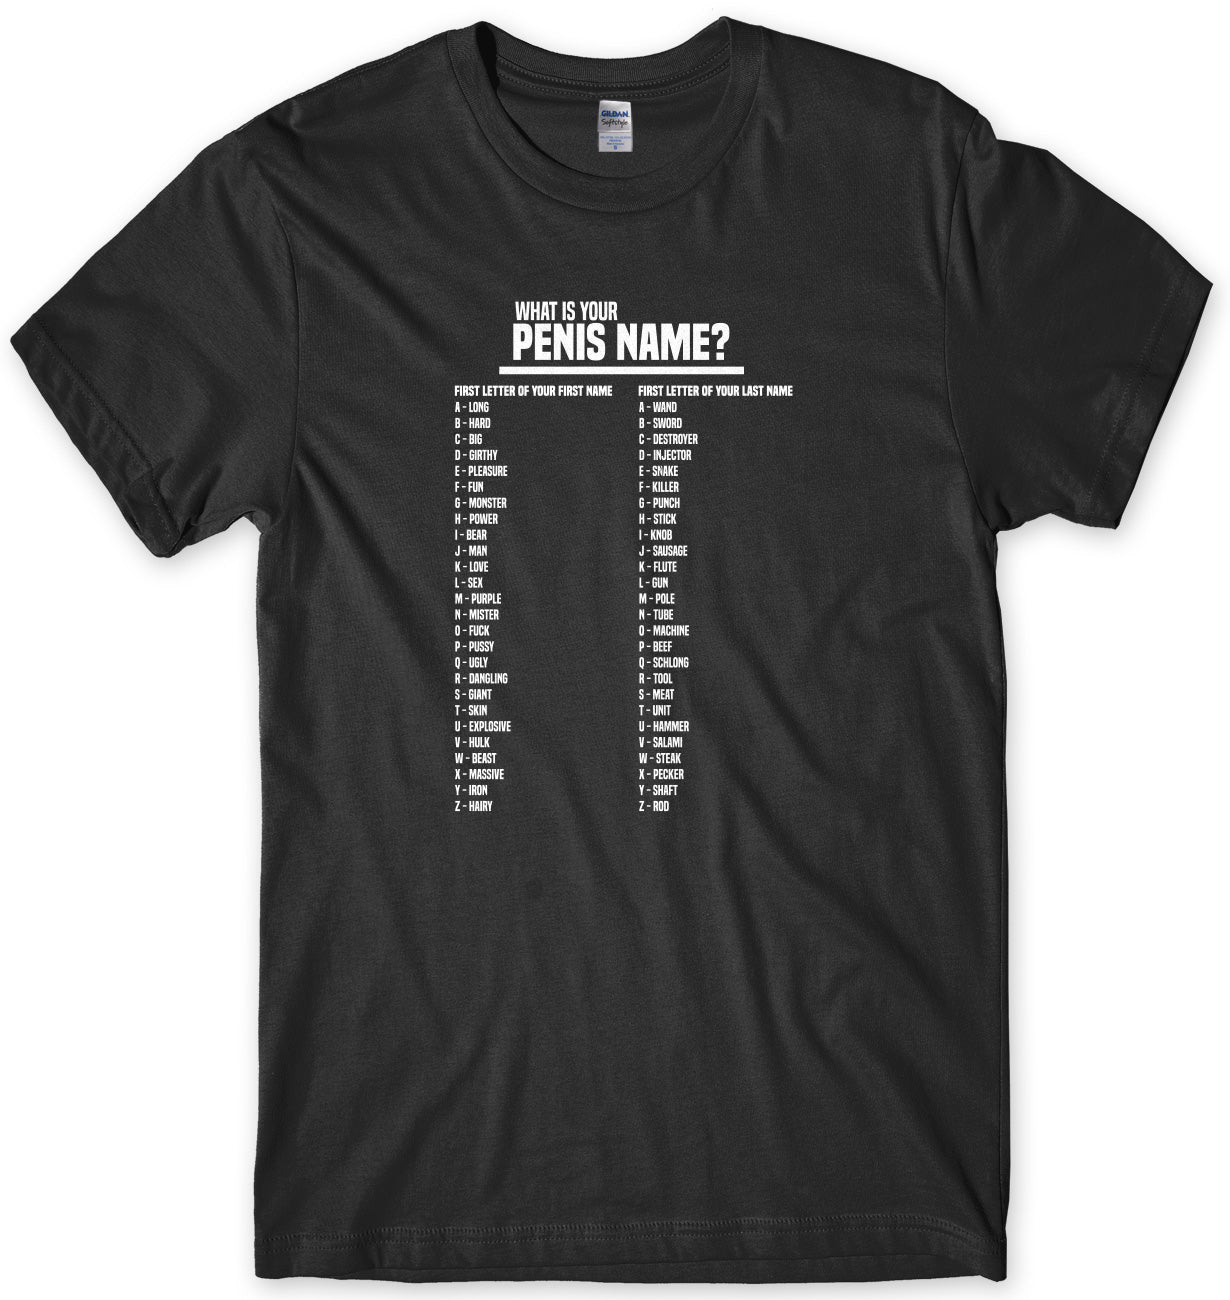 What Is Your Penis Name? Mens Unisex T-Shirt